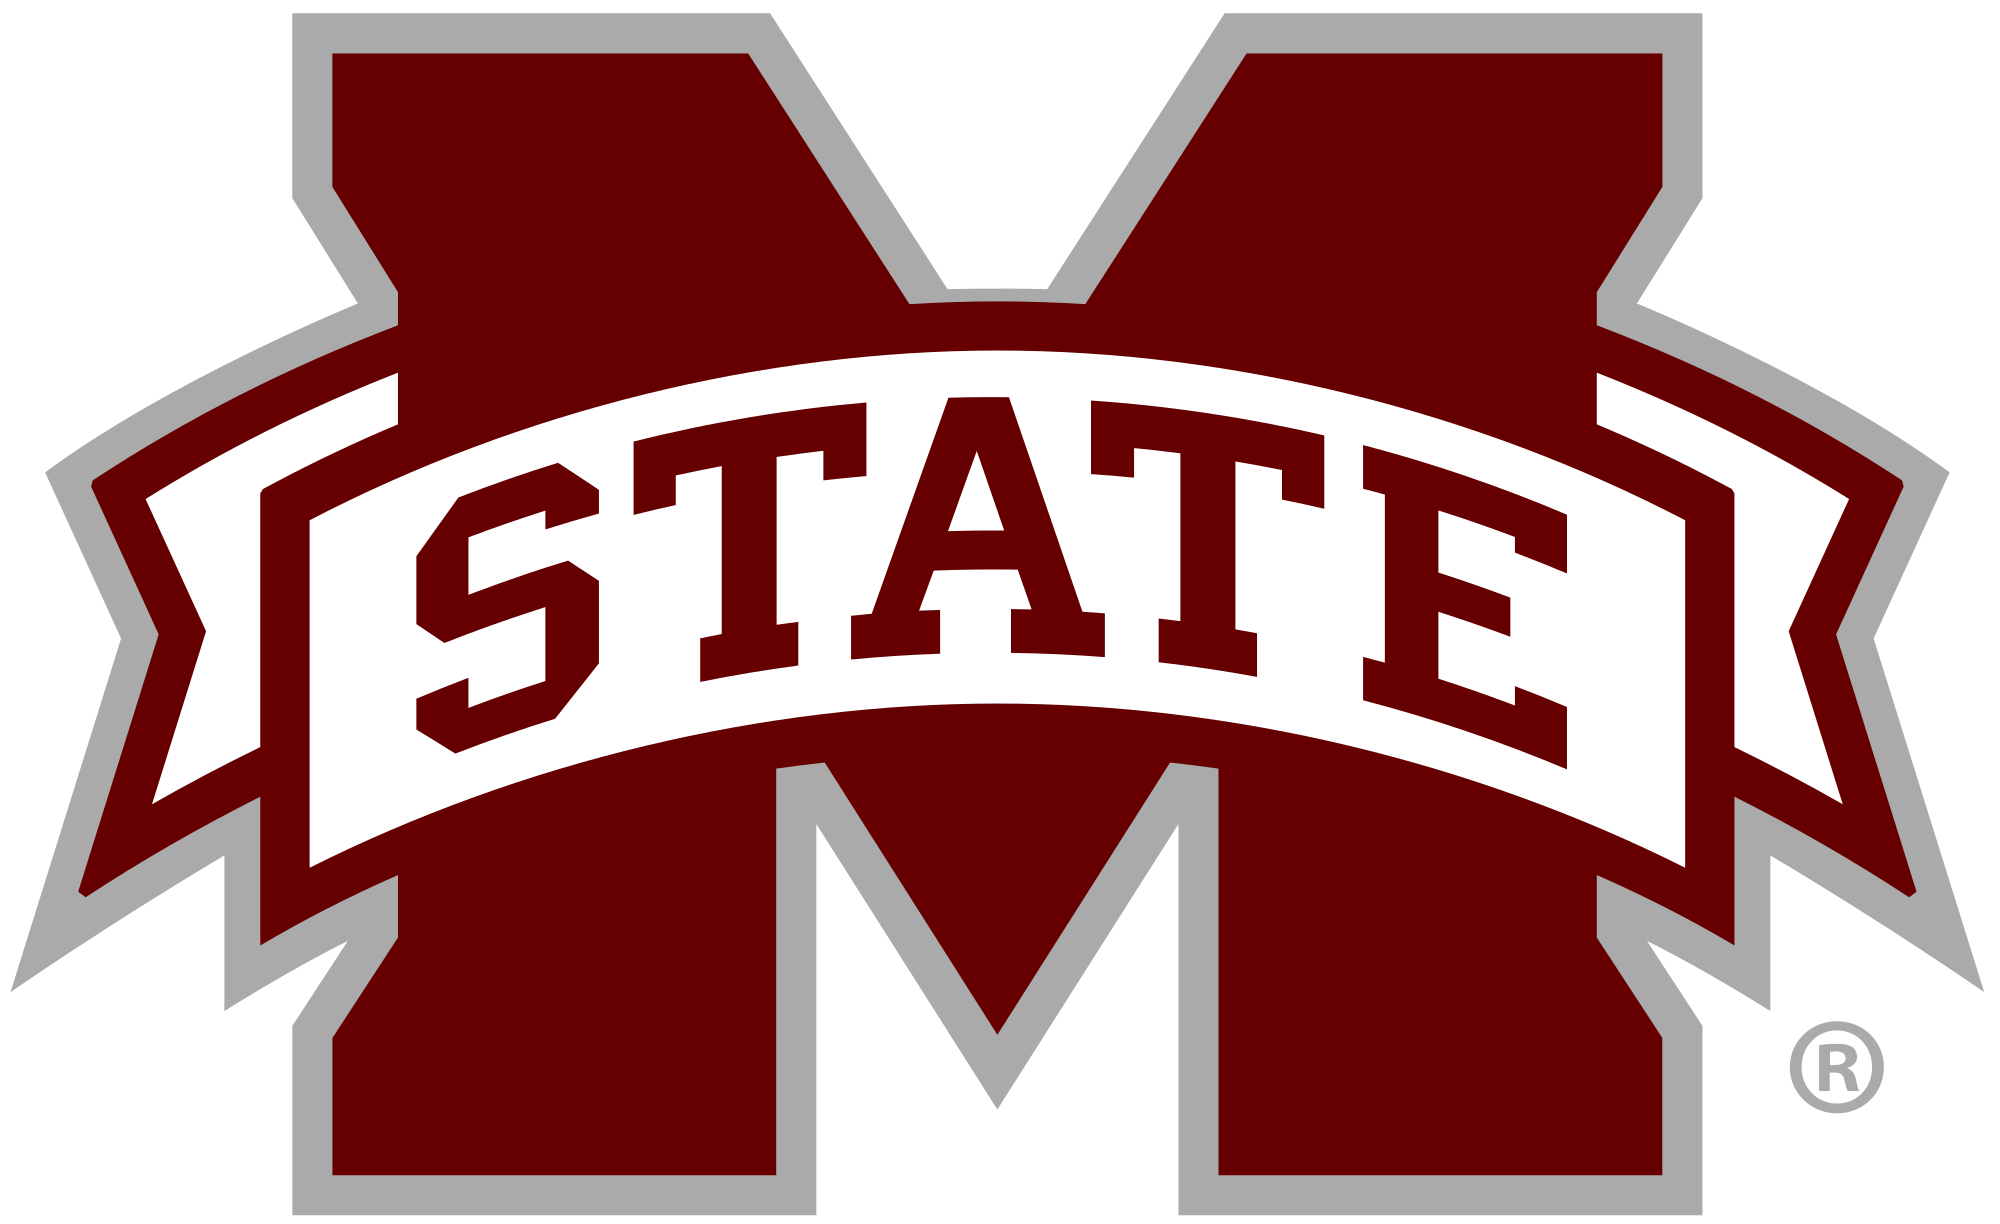 Ohio state football clipart freeuse library 28+ Collection of Mississippi State Football Clipart | High quality ... freeuse library